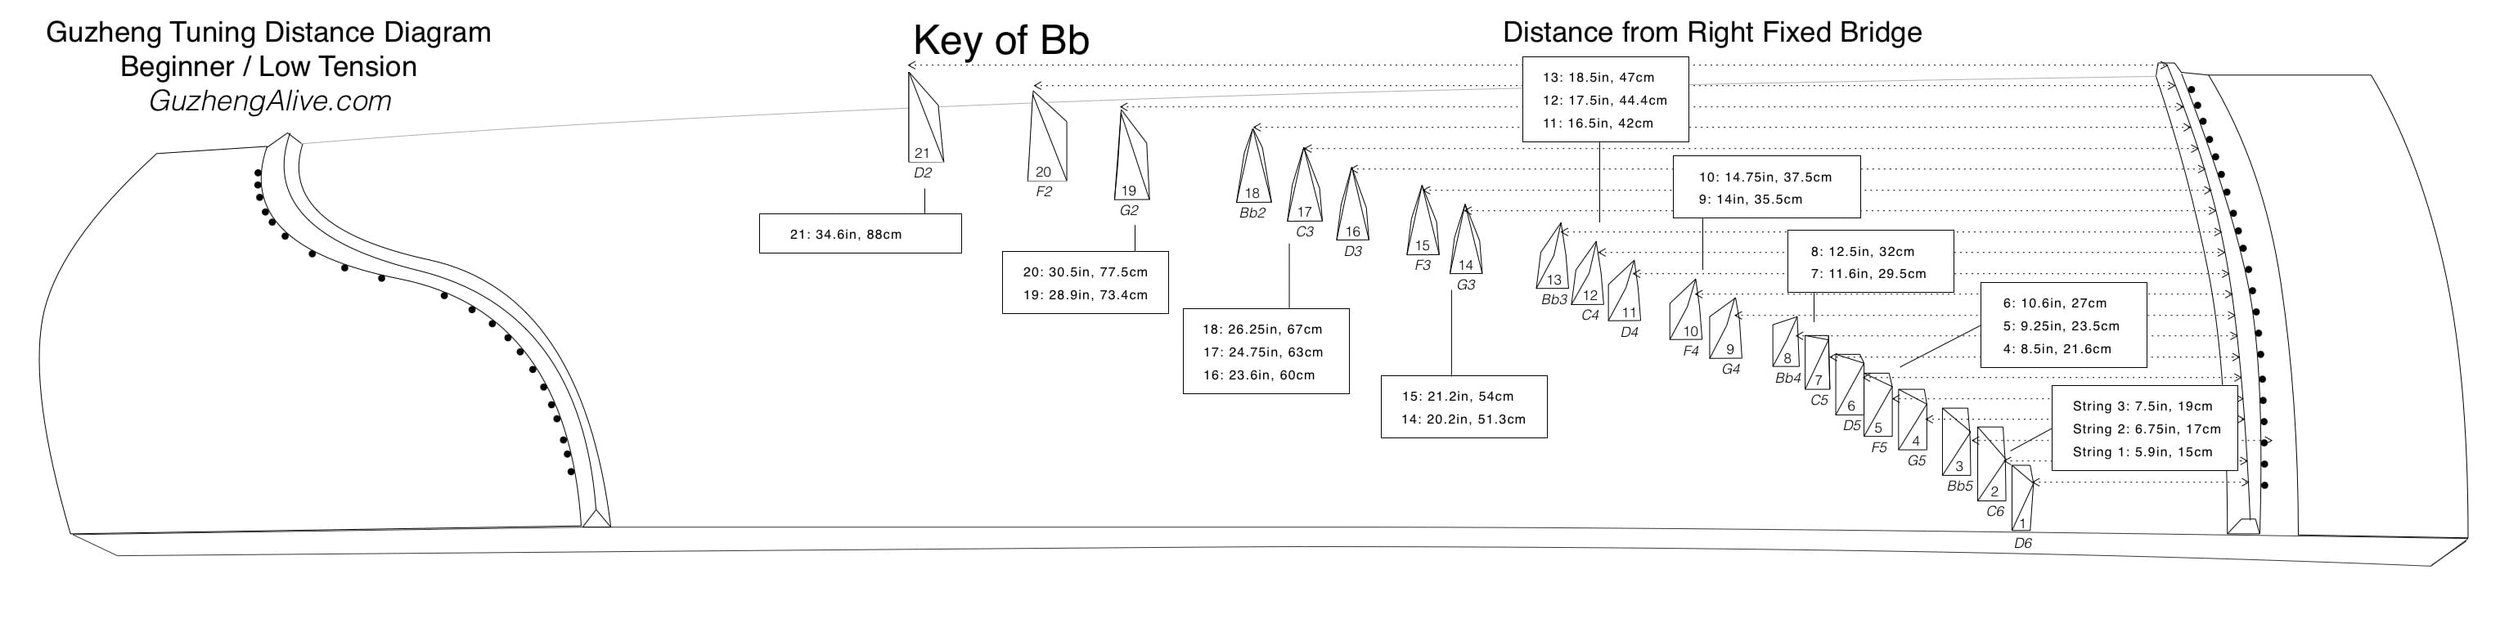 Key of Bb Guzheng Tuning Diagram.jpg